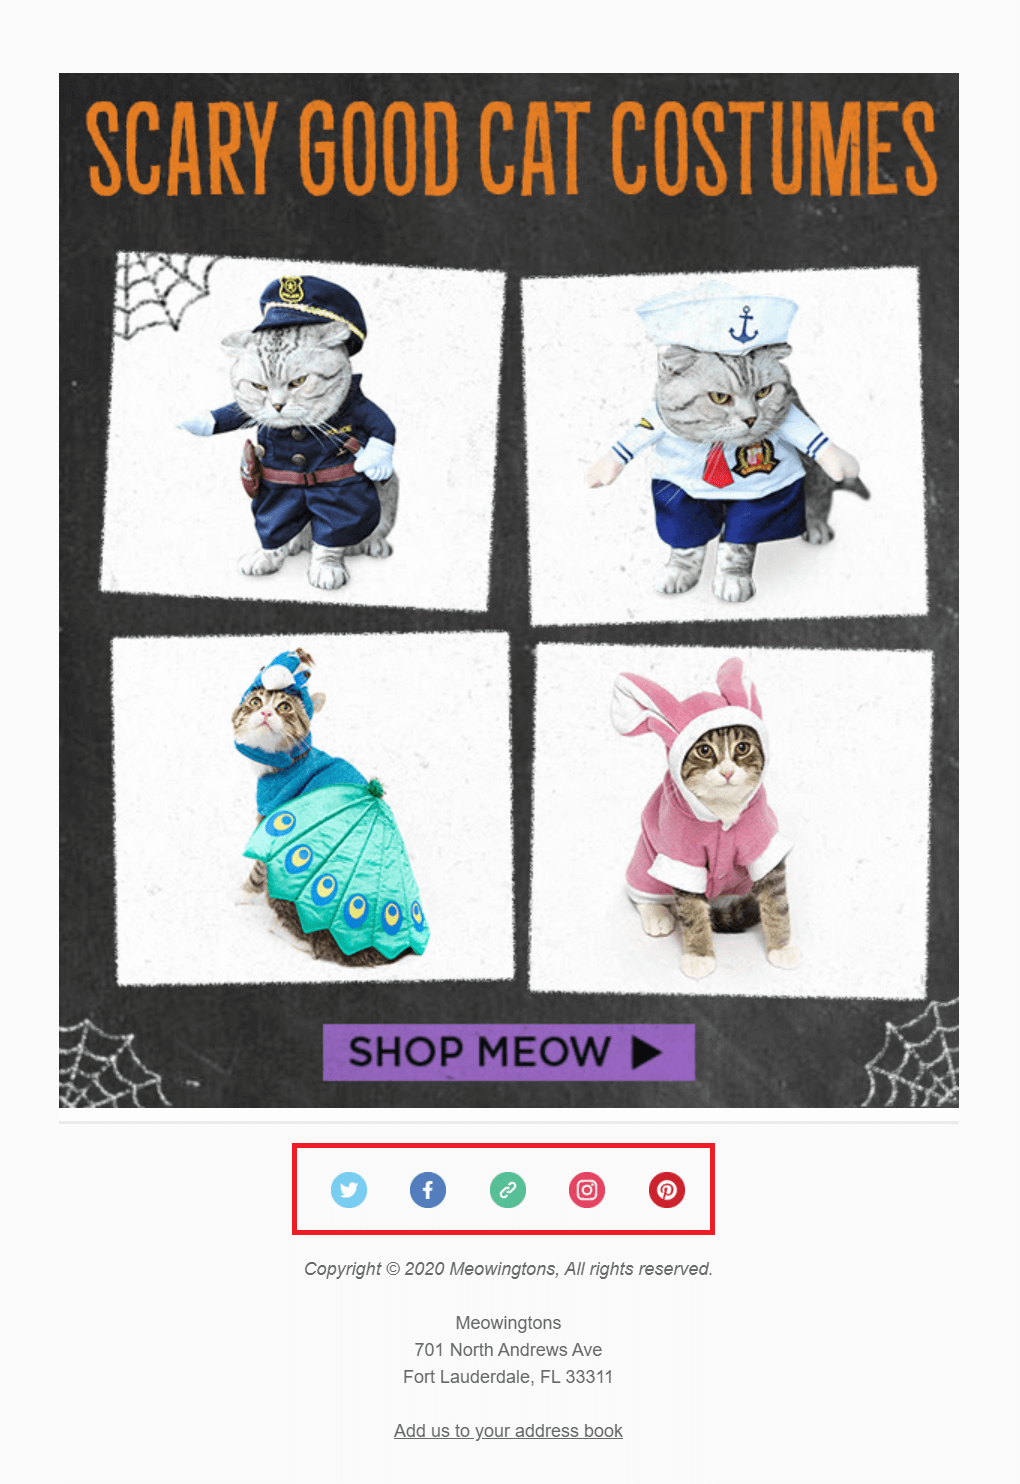 meowingtons social buttons on email